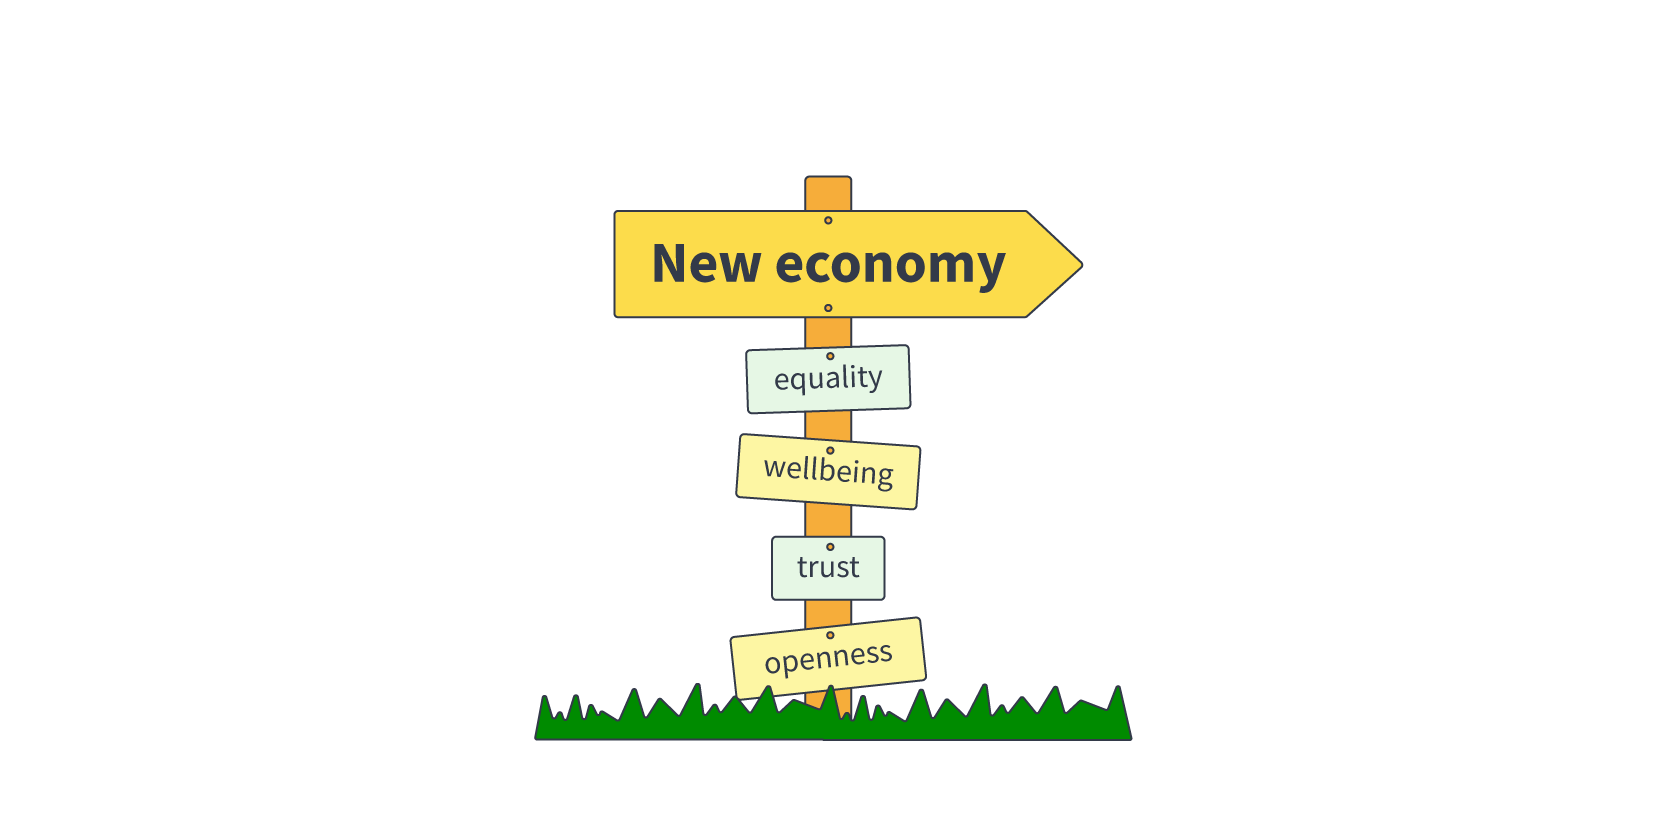 Illustration of road sign leading to new economy